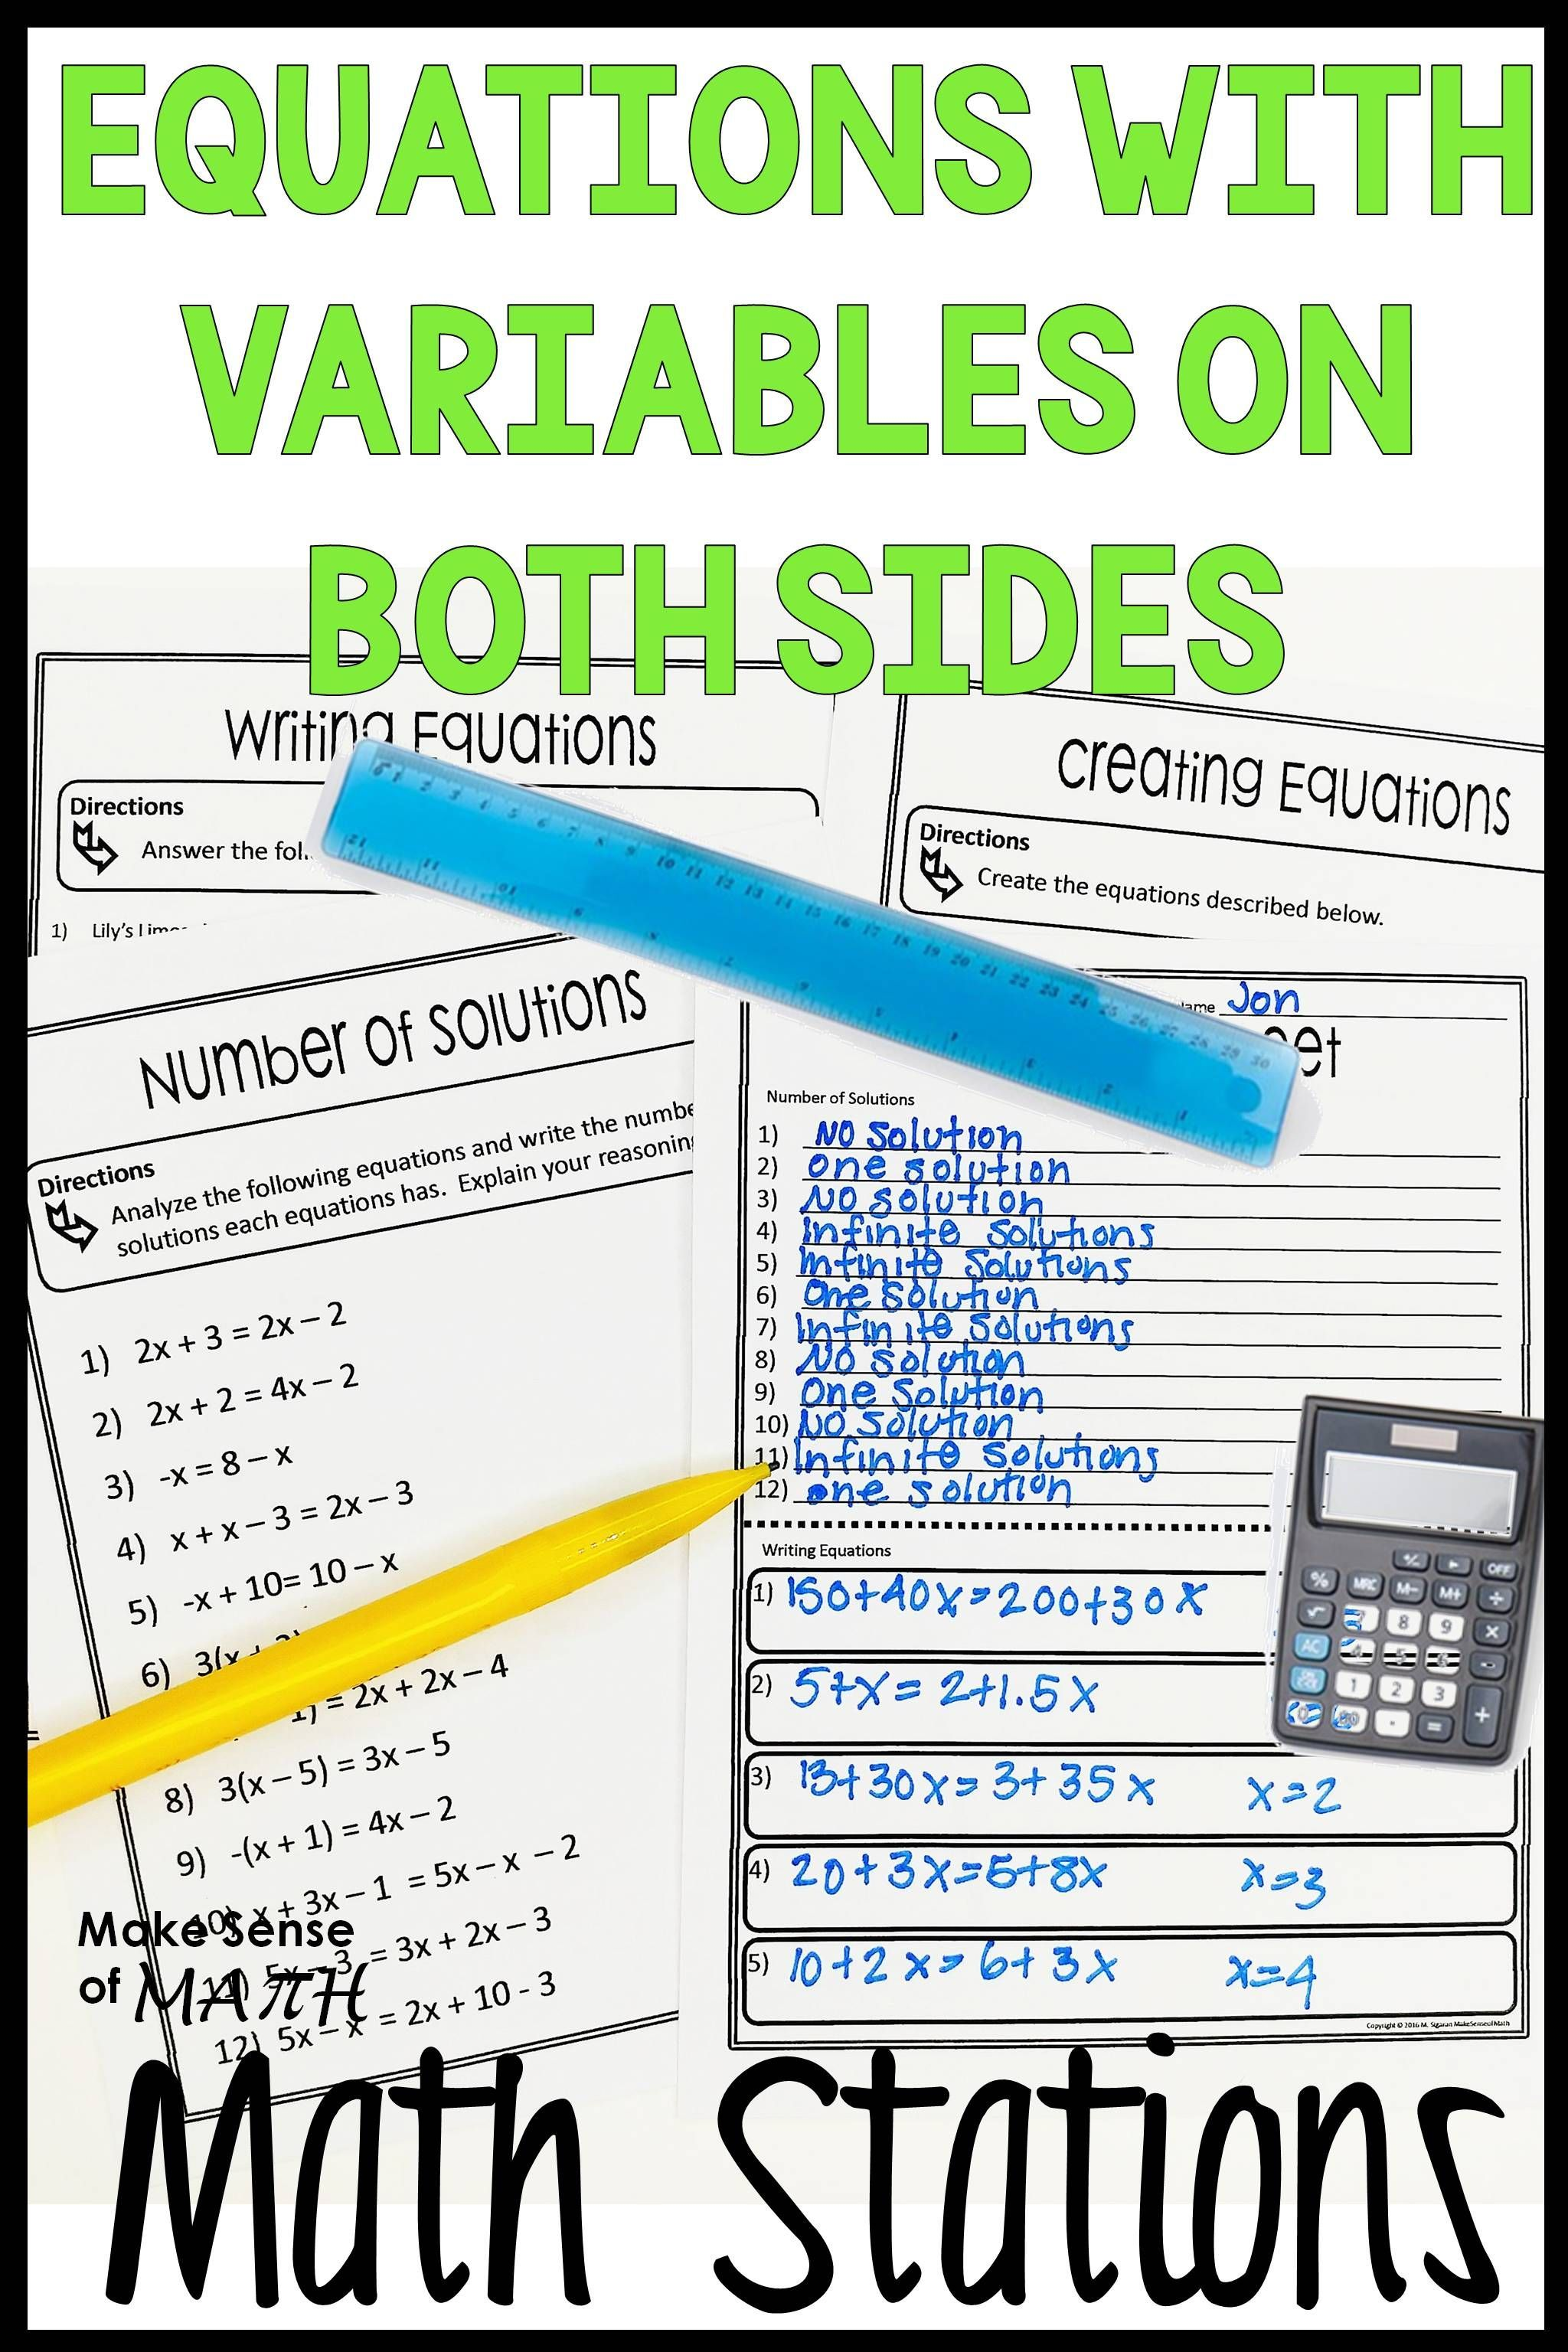 Check Out These Math Stations To Practice Solving